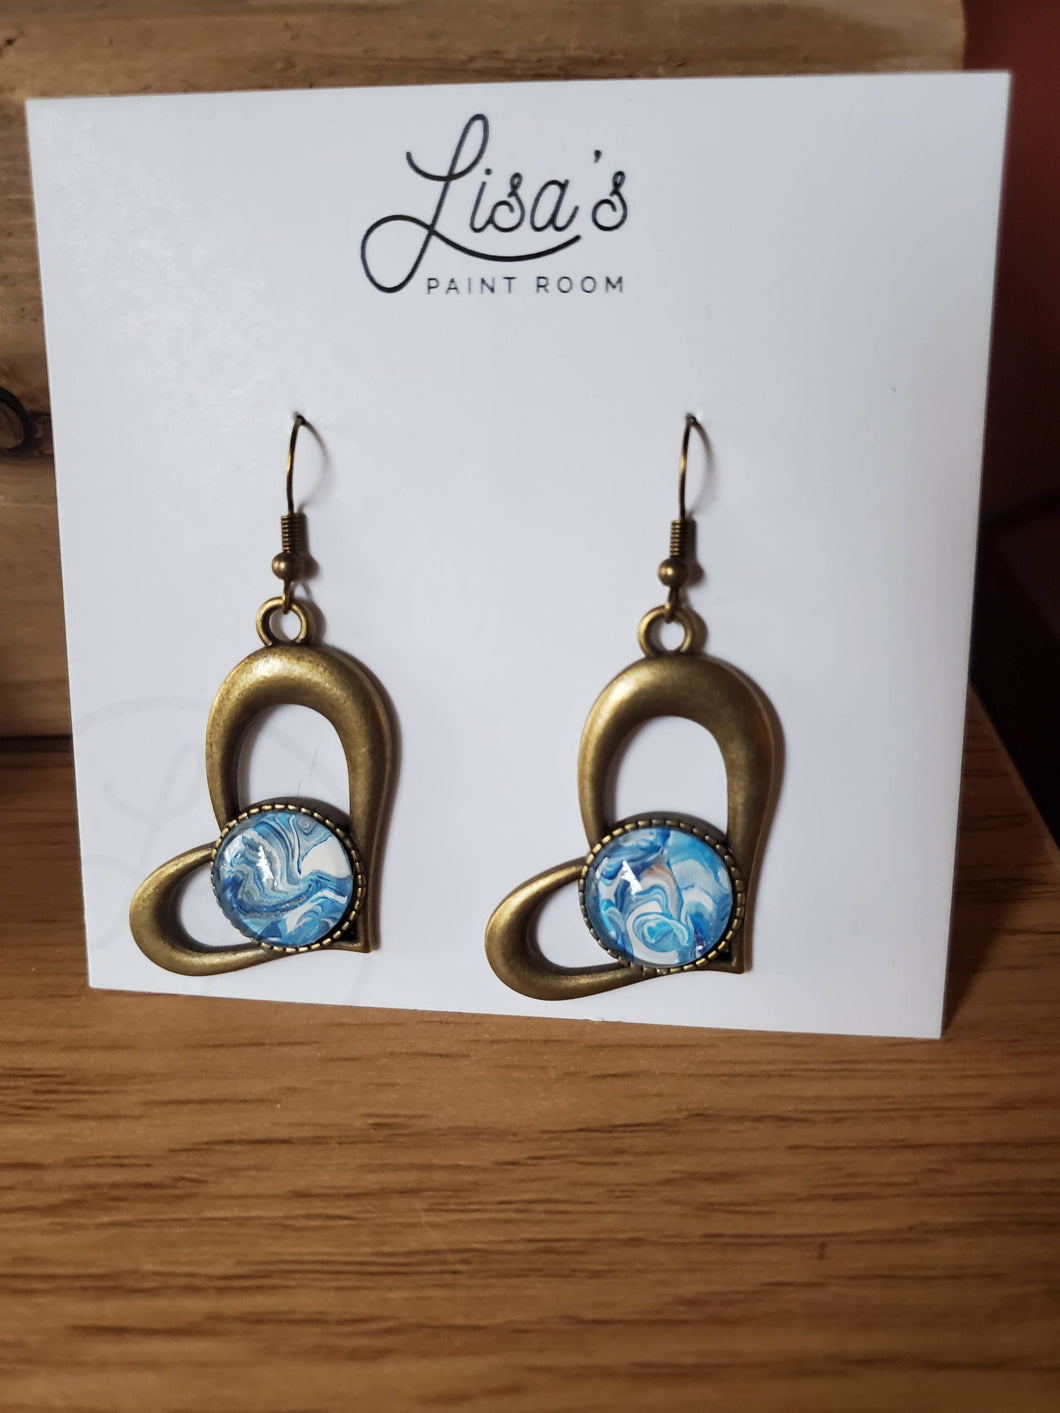 Paint Pour Earrings